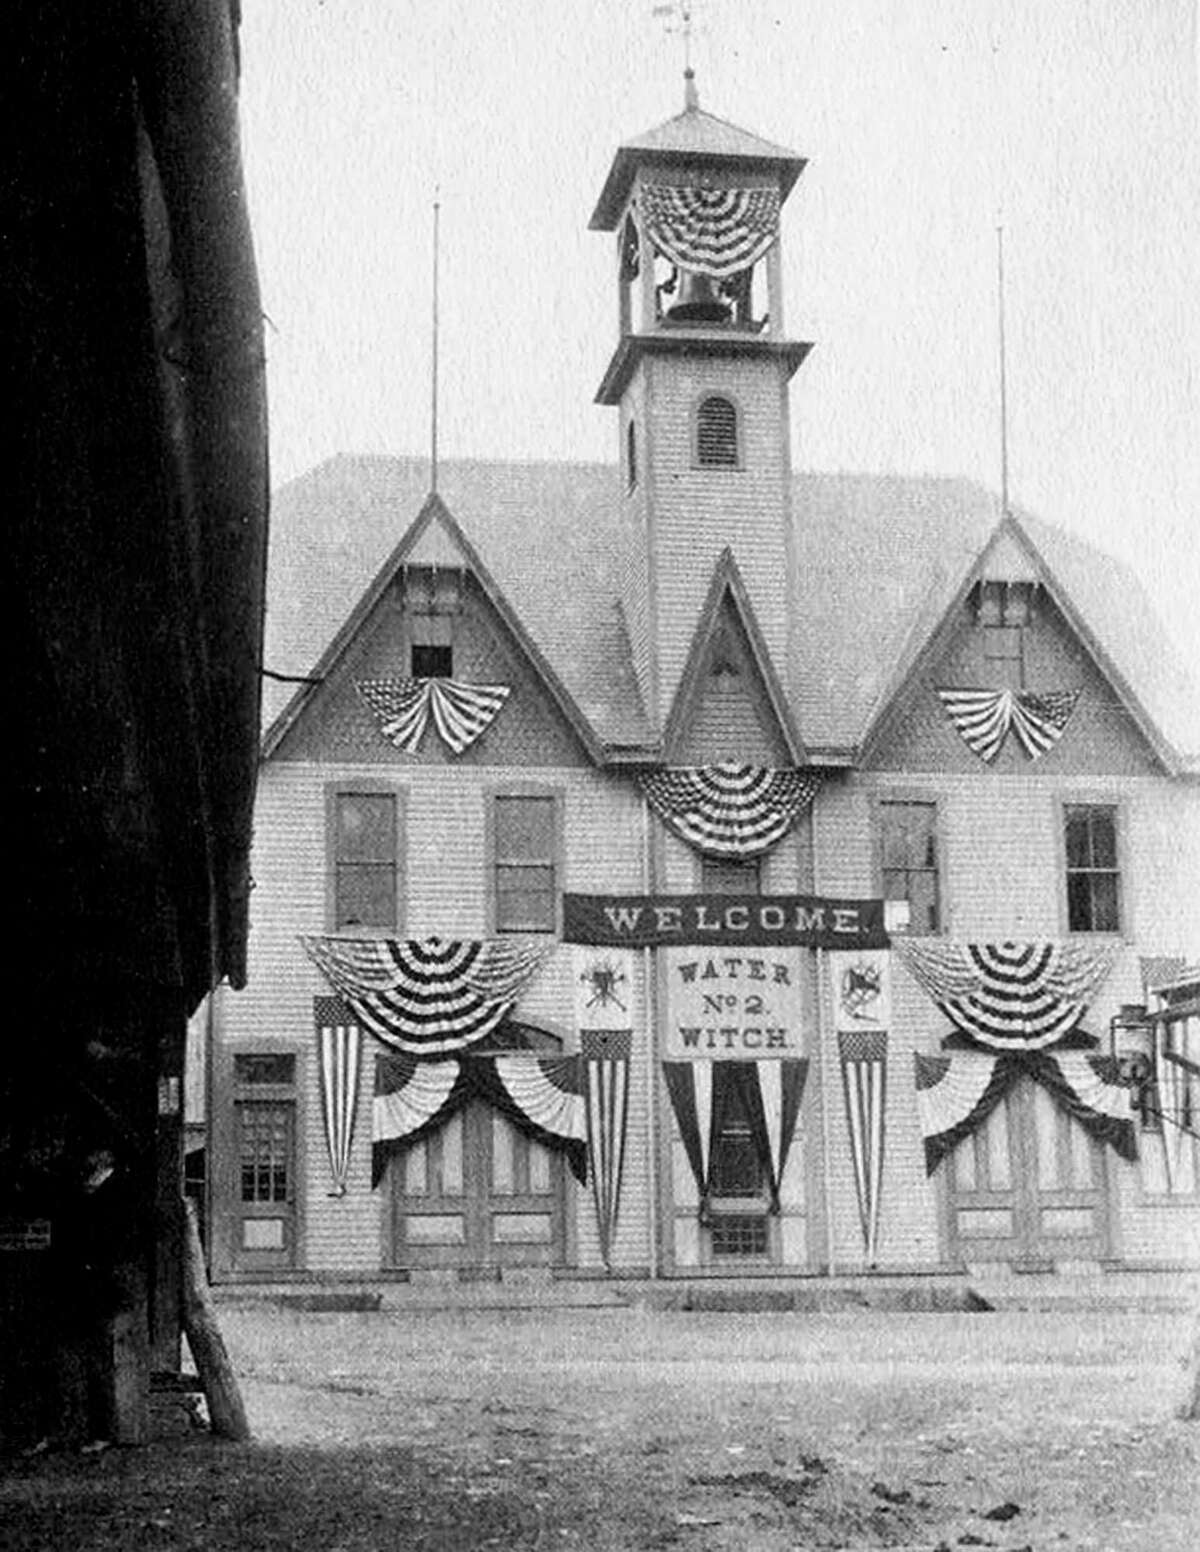 """The Water Witch Hose Co. No. 2 firehouse on Church Street in the village center of New Miford is all dressed up in 1900 for the traditional firemen's parade. Now home to Ruth Chase Flowers, the wooden edifice served as the town's chief fire station from the late 1800s until a state of the art, brick structure was built in 1960 on Route 67, alongside Great Brook, just south of the intersection of East and Bridge streets. If you have a """"Way Back When"""" photograph you'd like to share, contact Deborah Rose at drose@newstimes.com or 860-355-7324."""